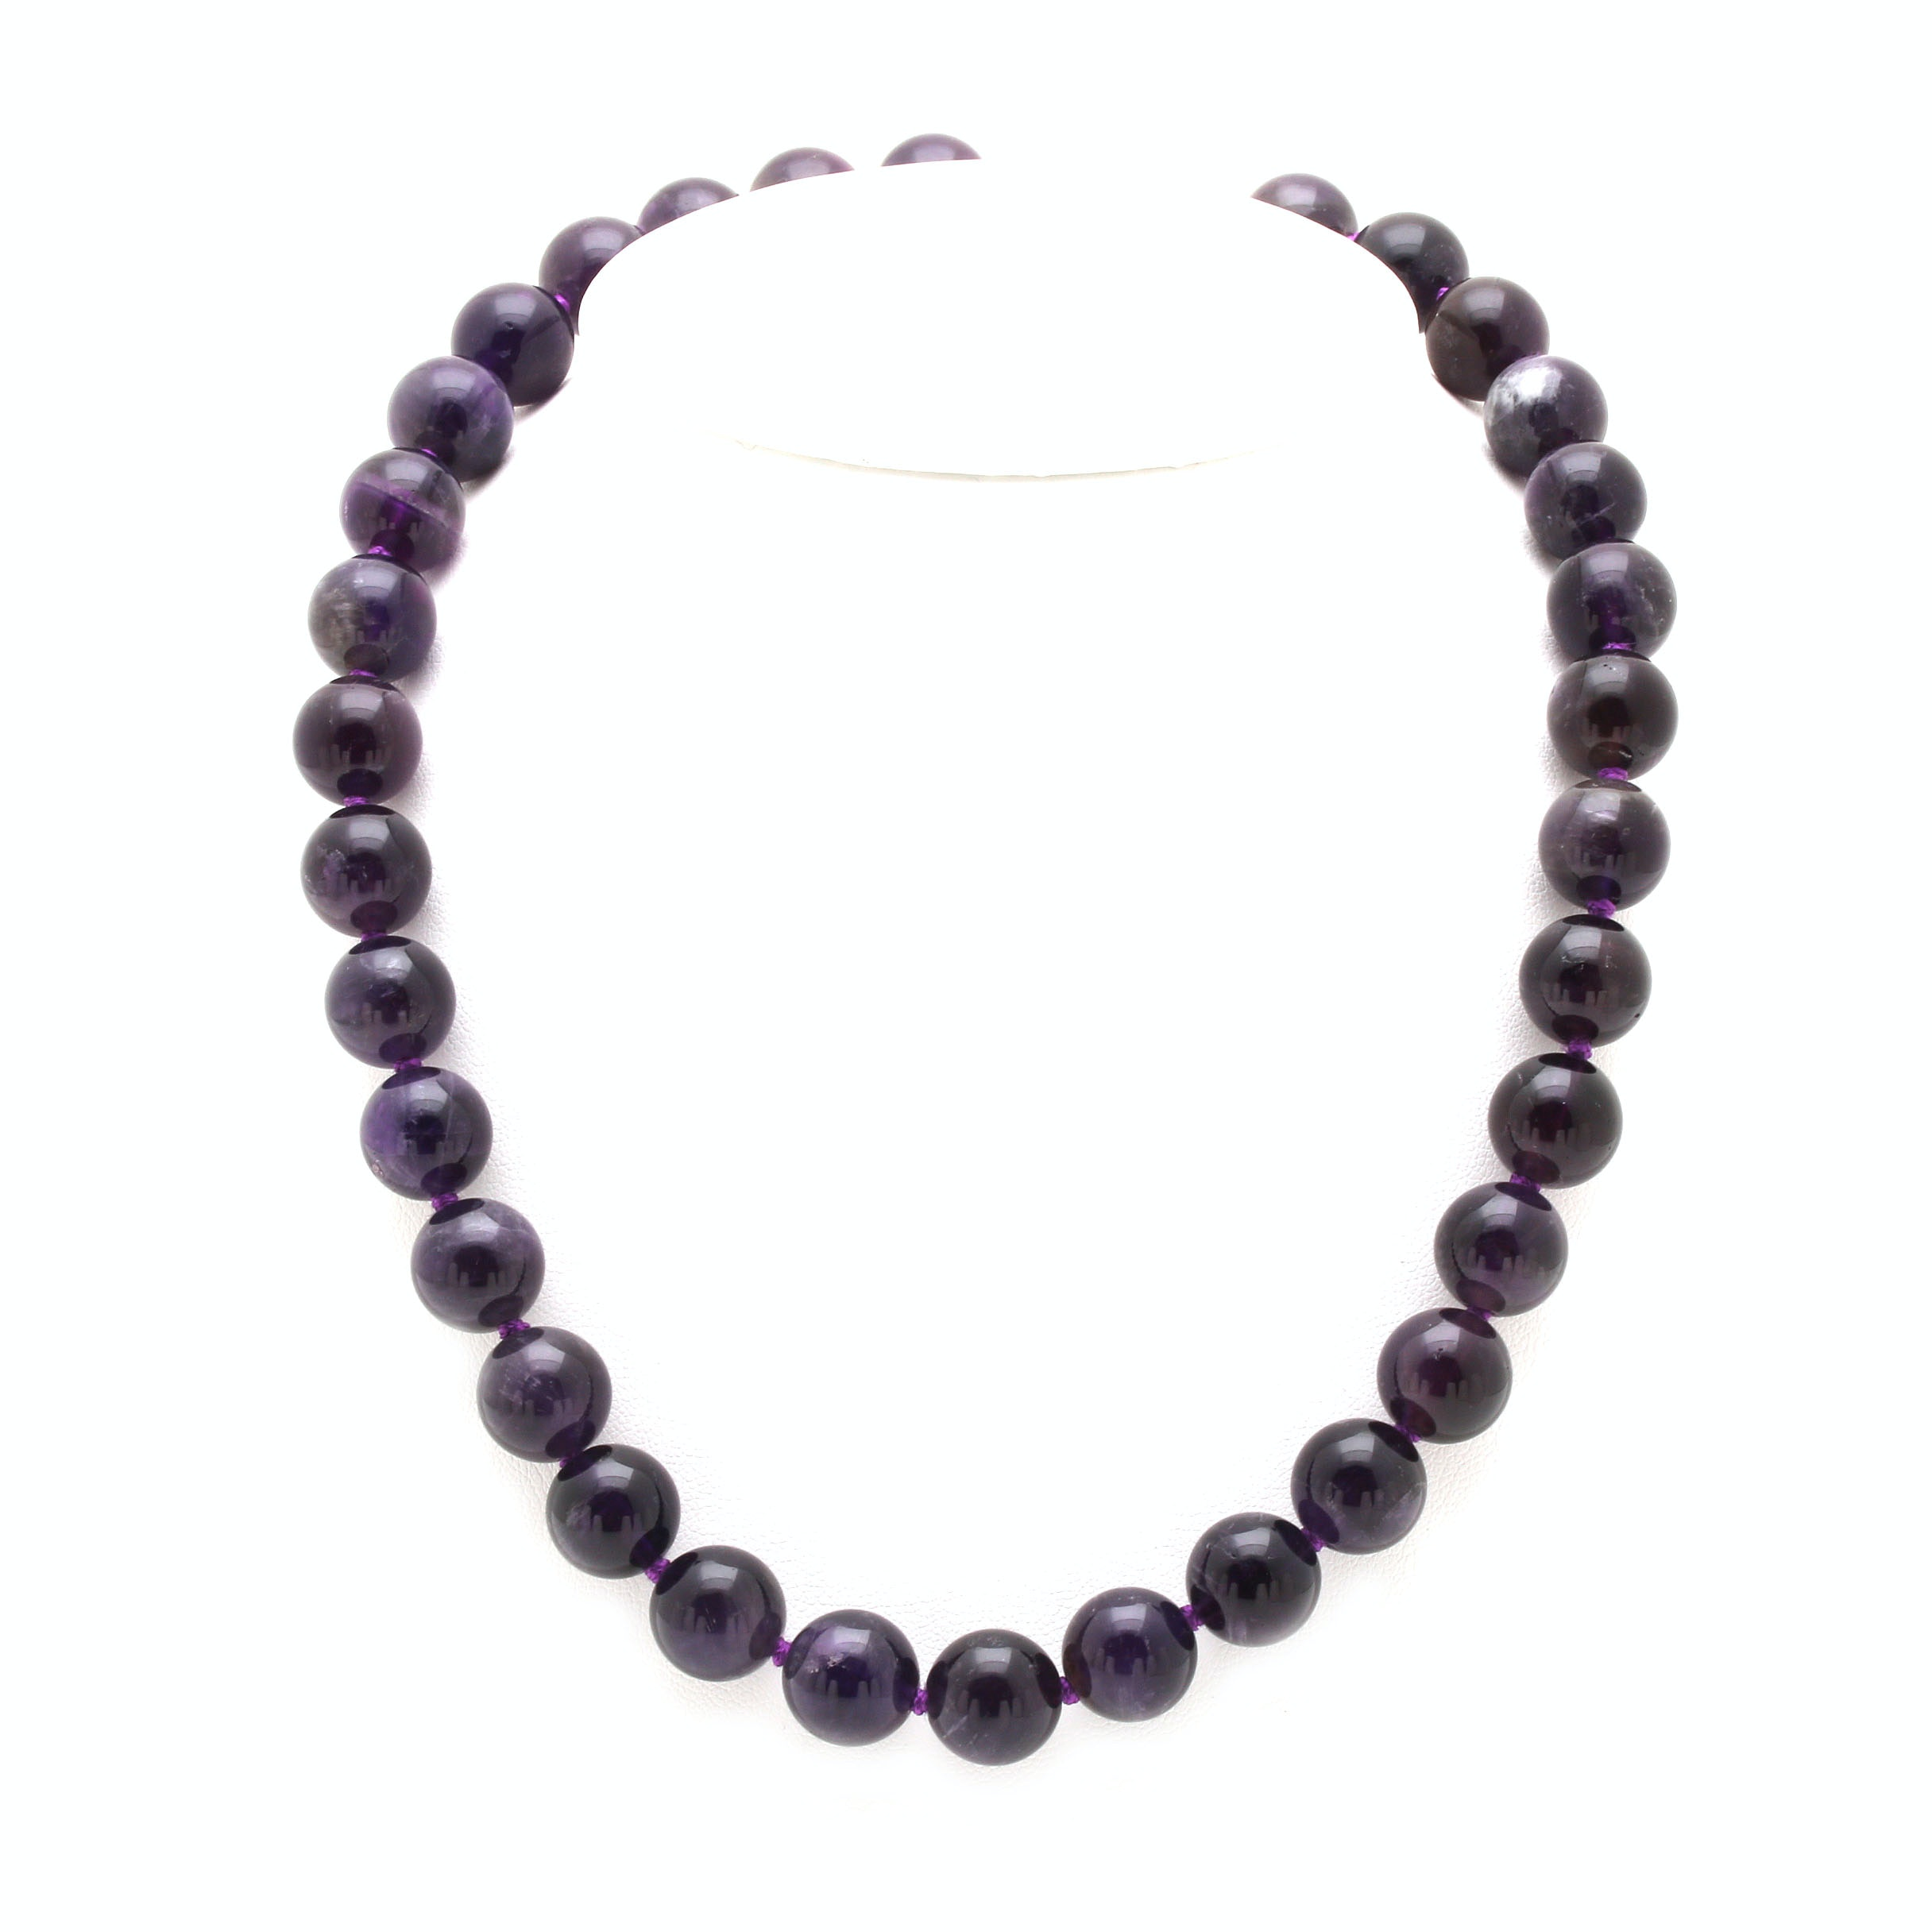 Hand-Knotted 390.00 CTW Amethyst Beaded Necklace with a Sterling Silver Clasp